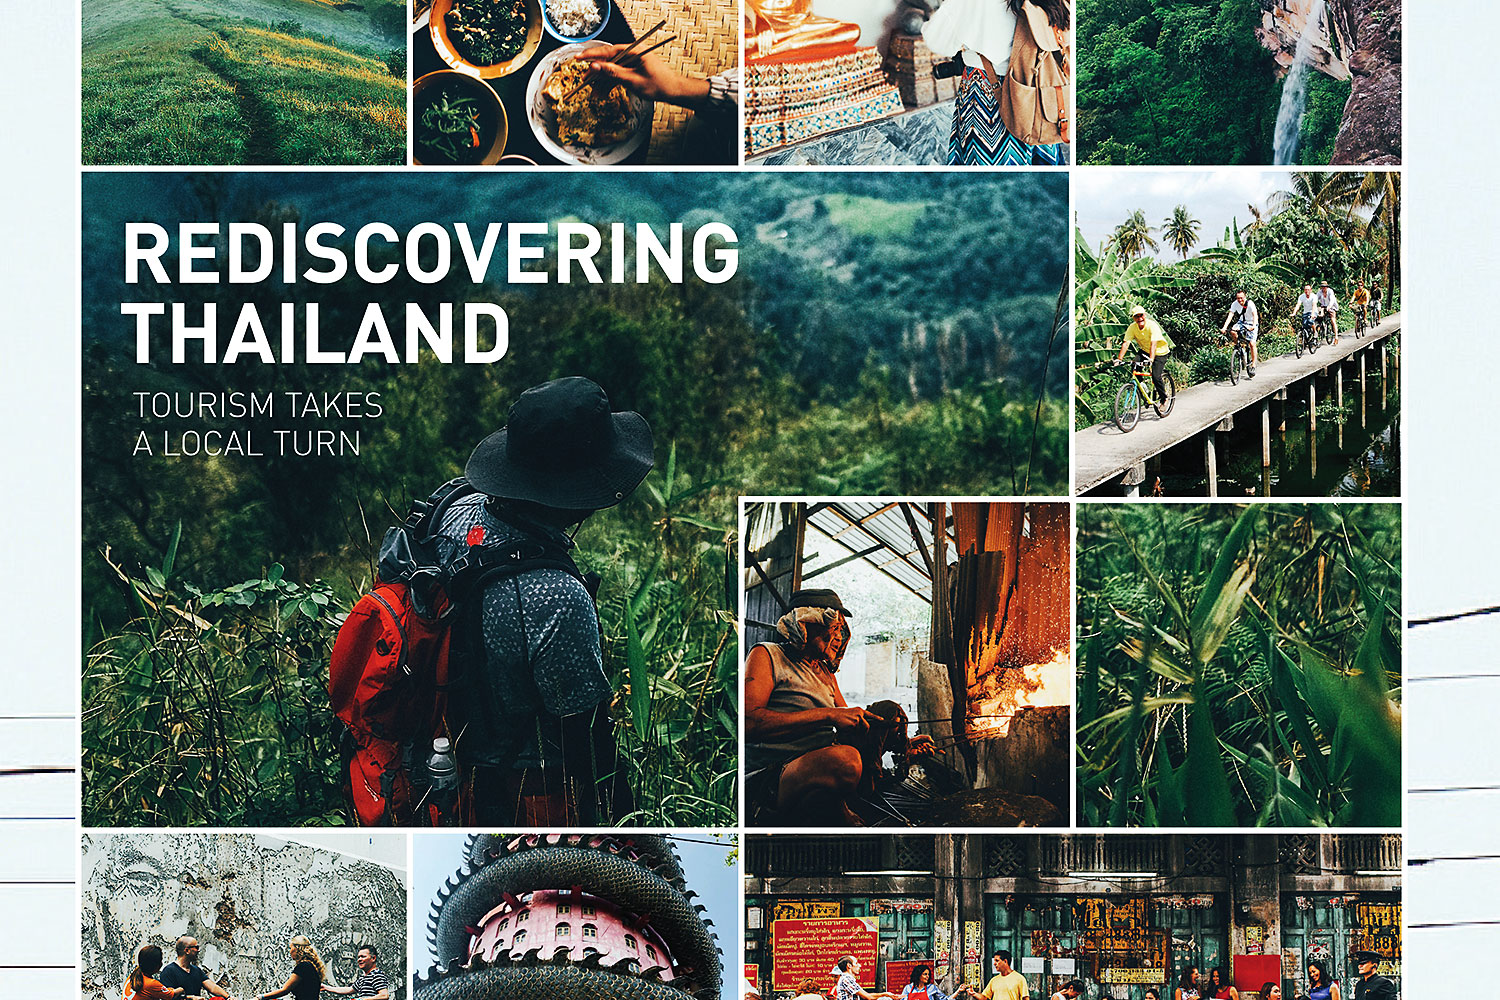 Rediscovering Thailand